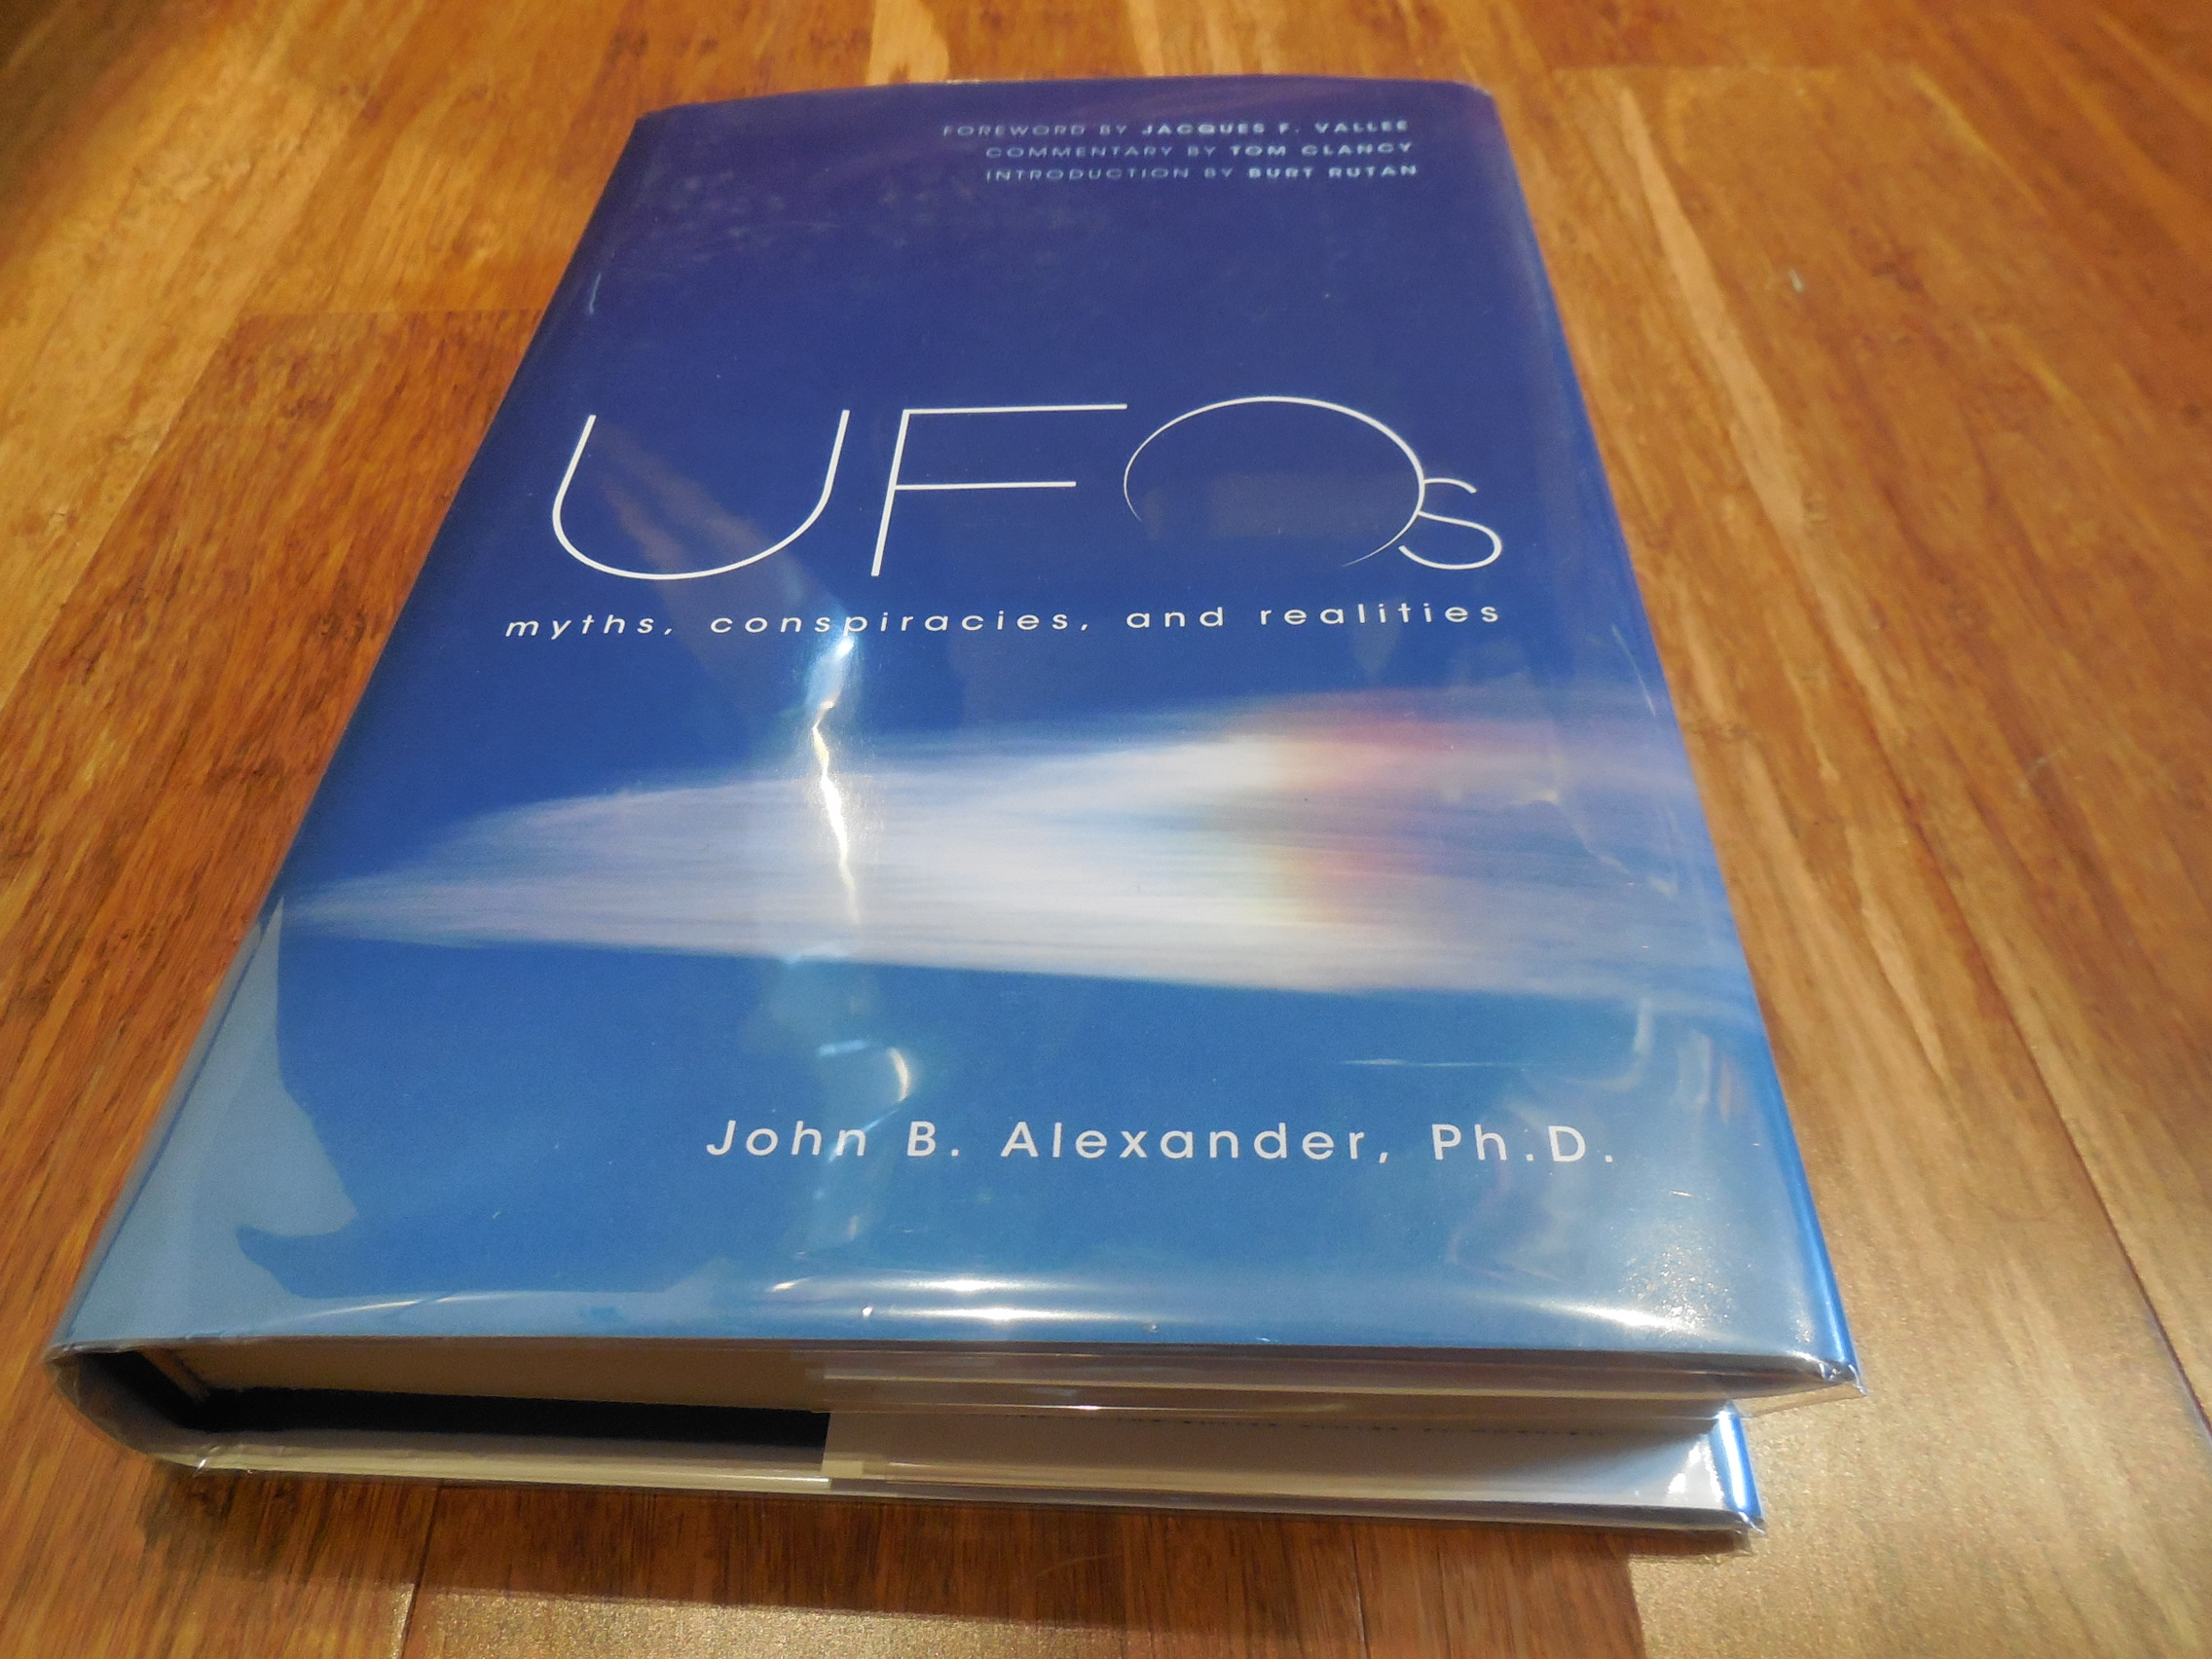 Image for UFOs - Myths, Conspiracies, and Realities